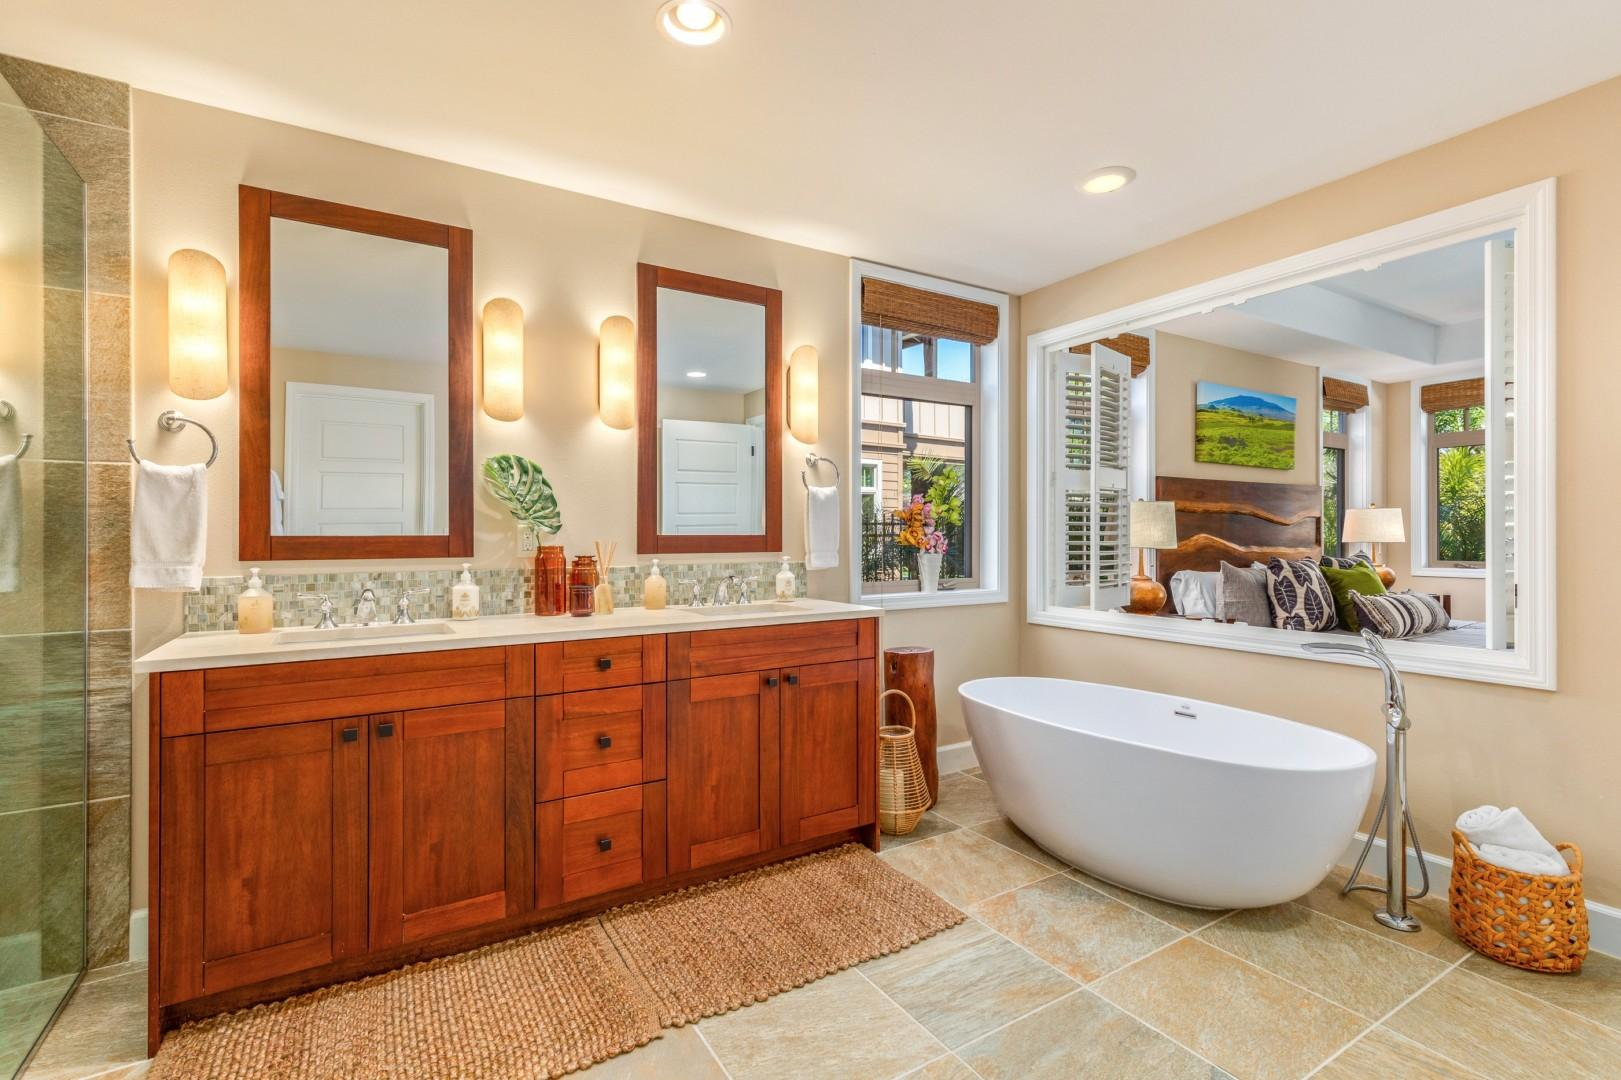 Master bath with oversized freestanding soaking tub, walk-in shower, dual vanity, W/C and walk-in closet.